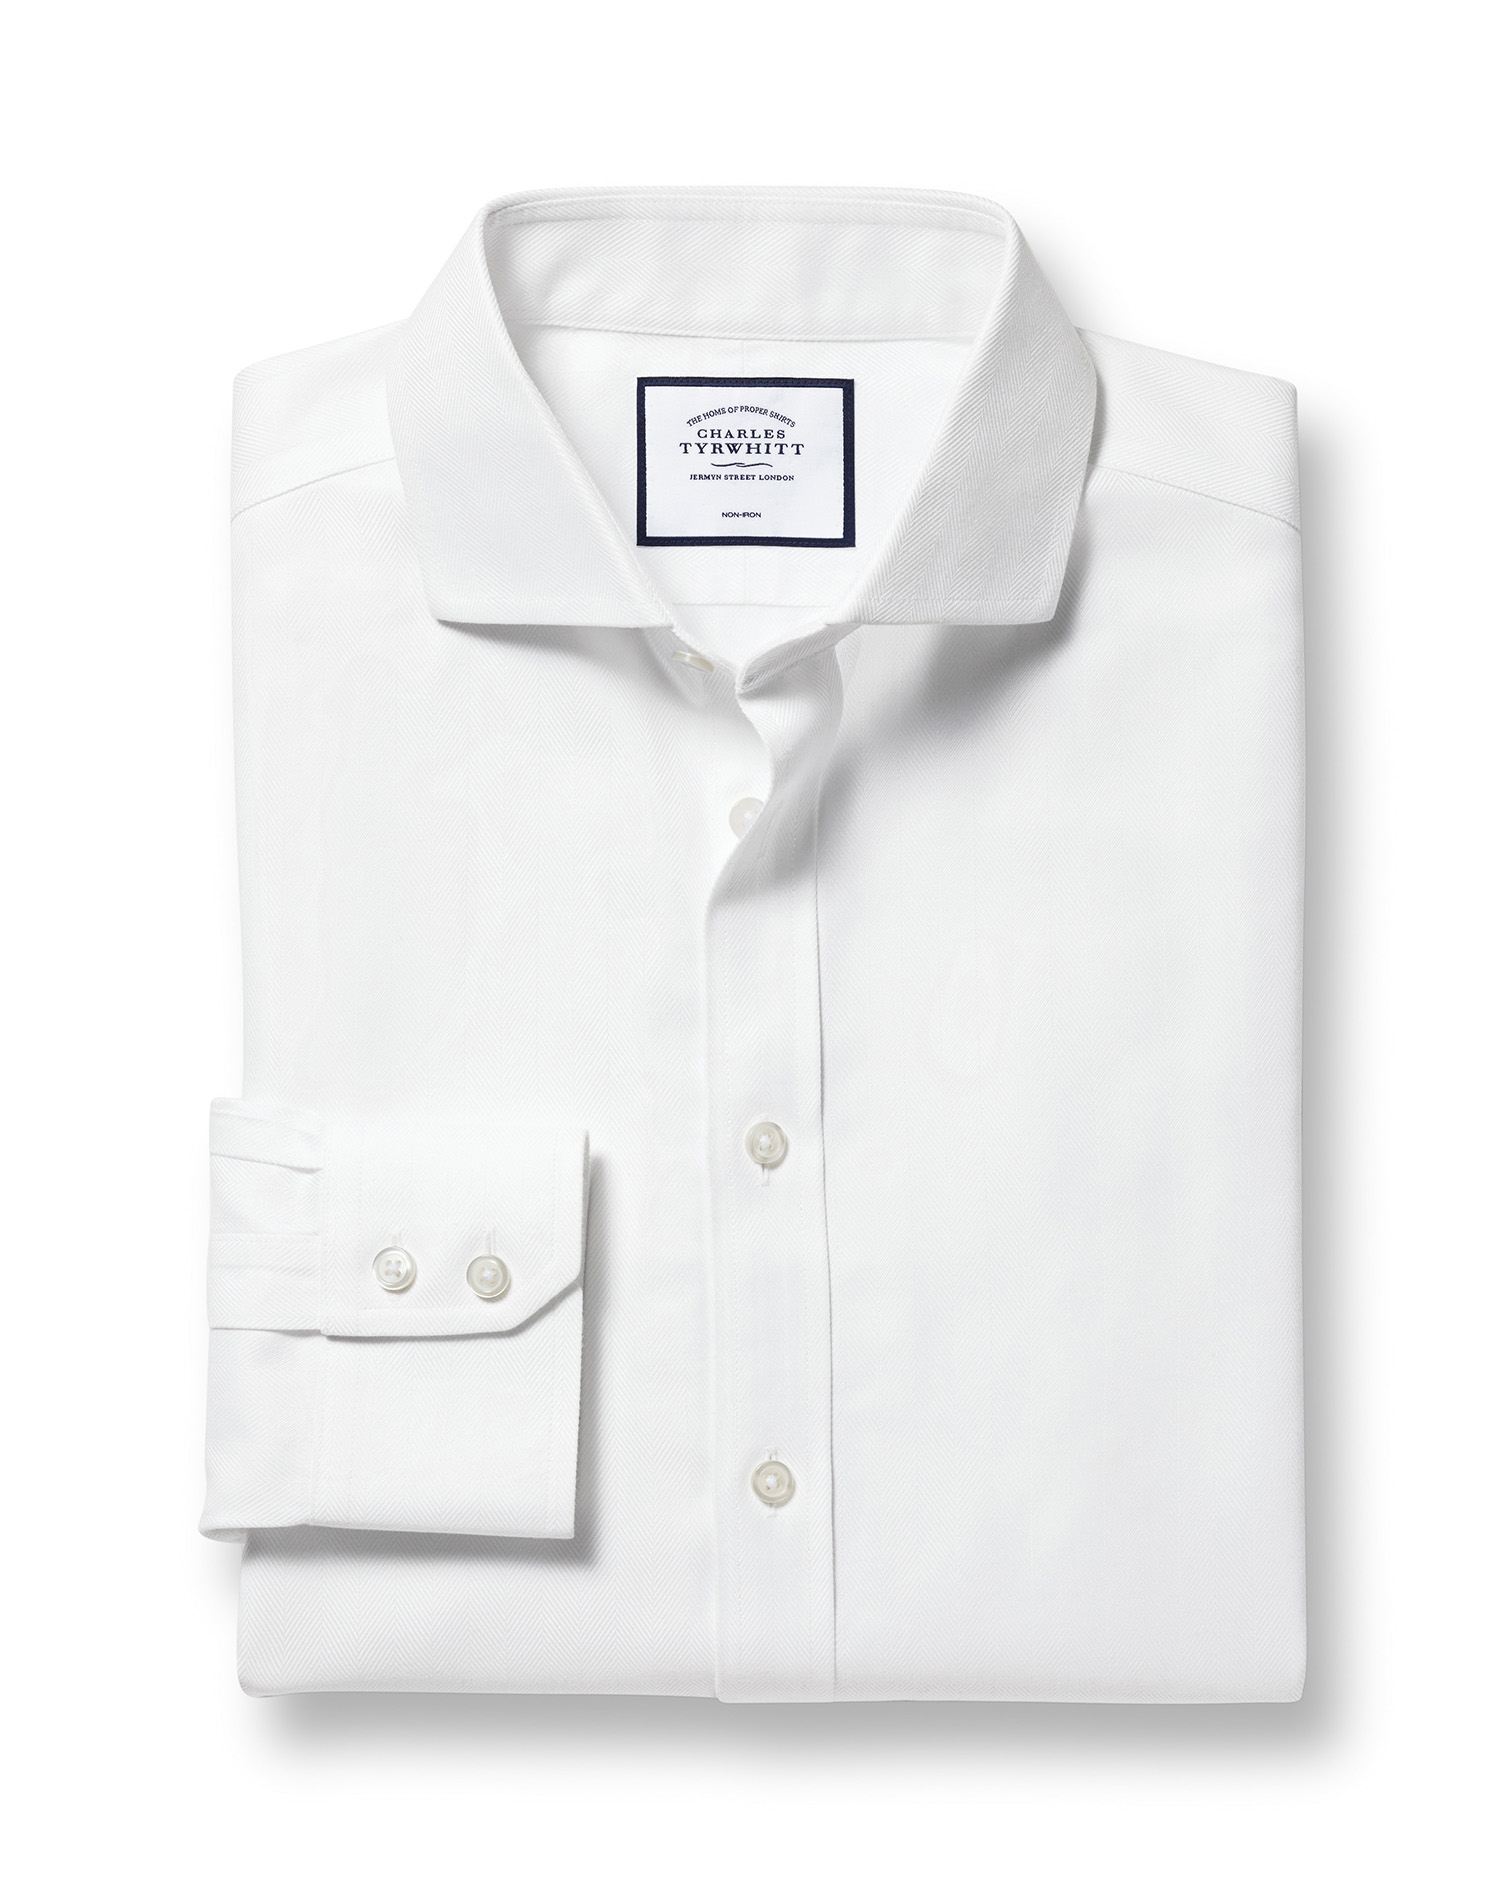 Extra Slim Fit Non-Iron White Herringbone Cotton Formal Shirt Single Cuff Size 17/34 by Charles Tyrw